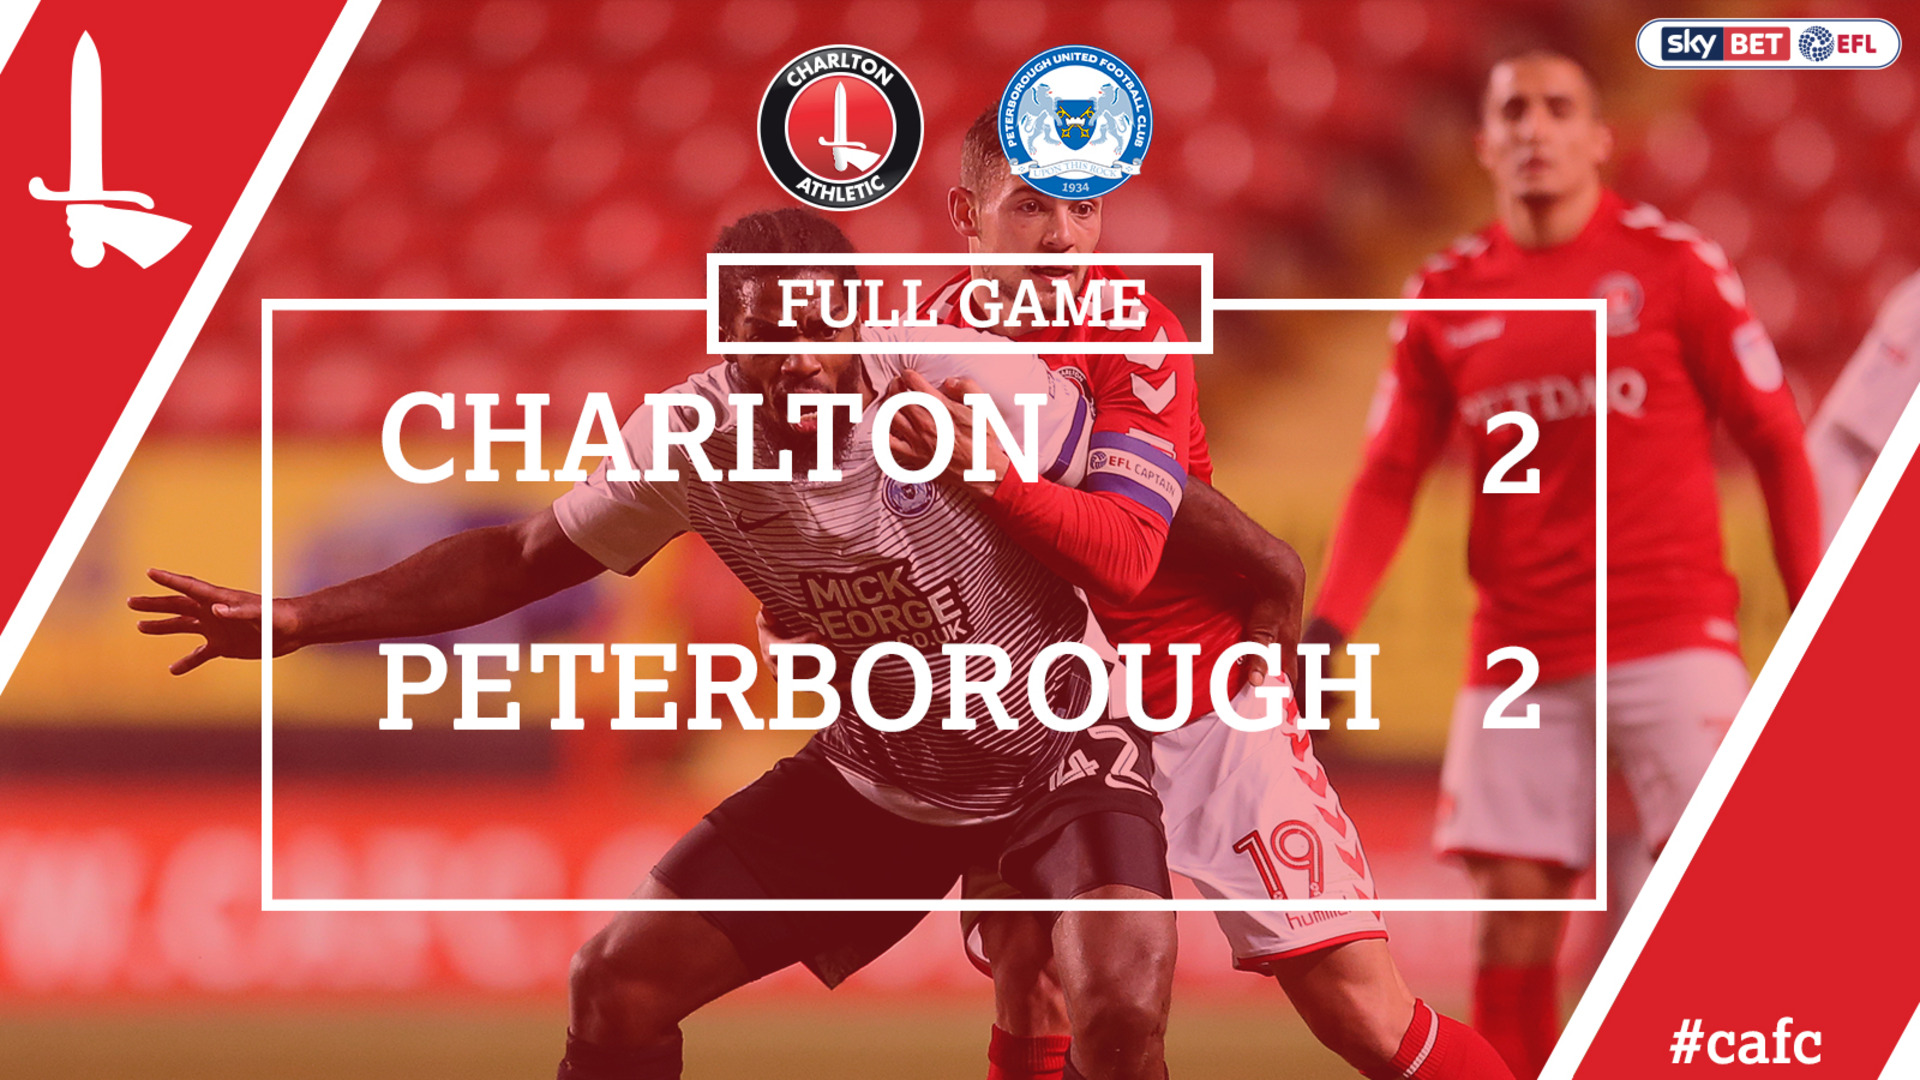 FULL GAME | Charlton 2 Peterborough 2